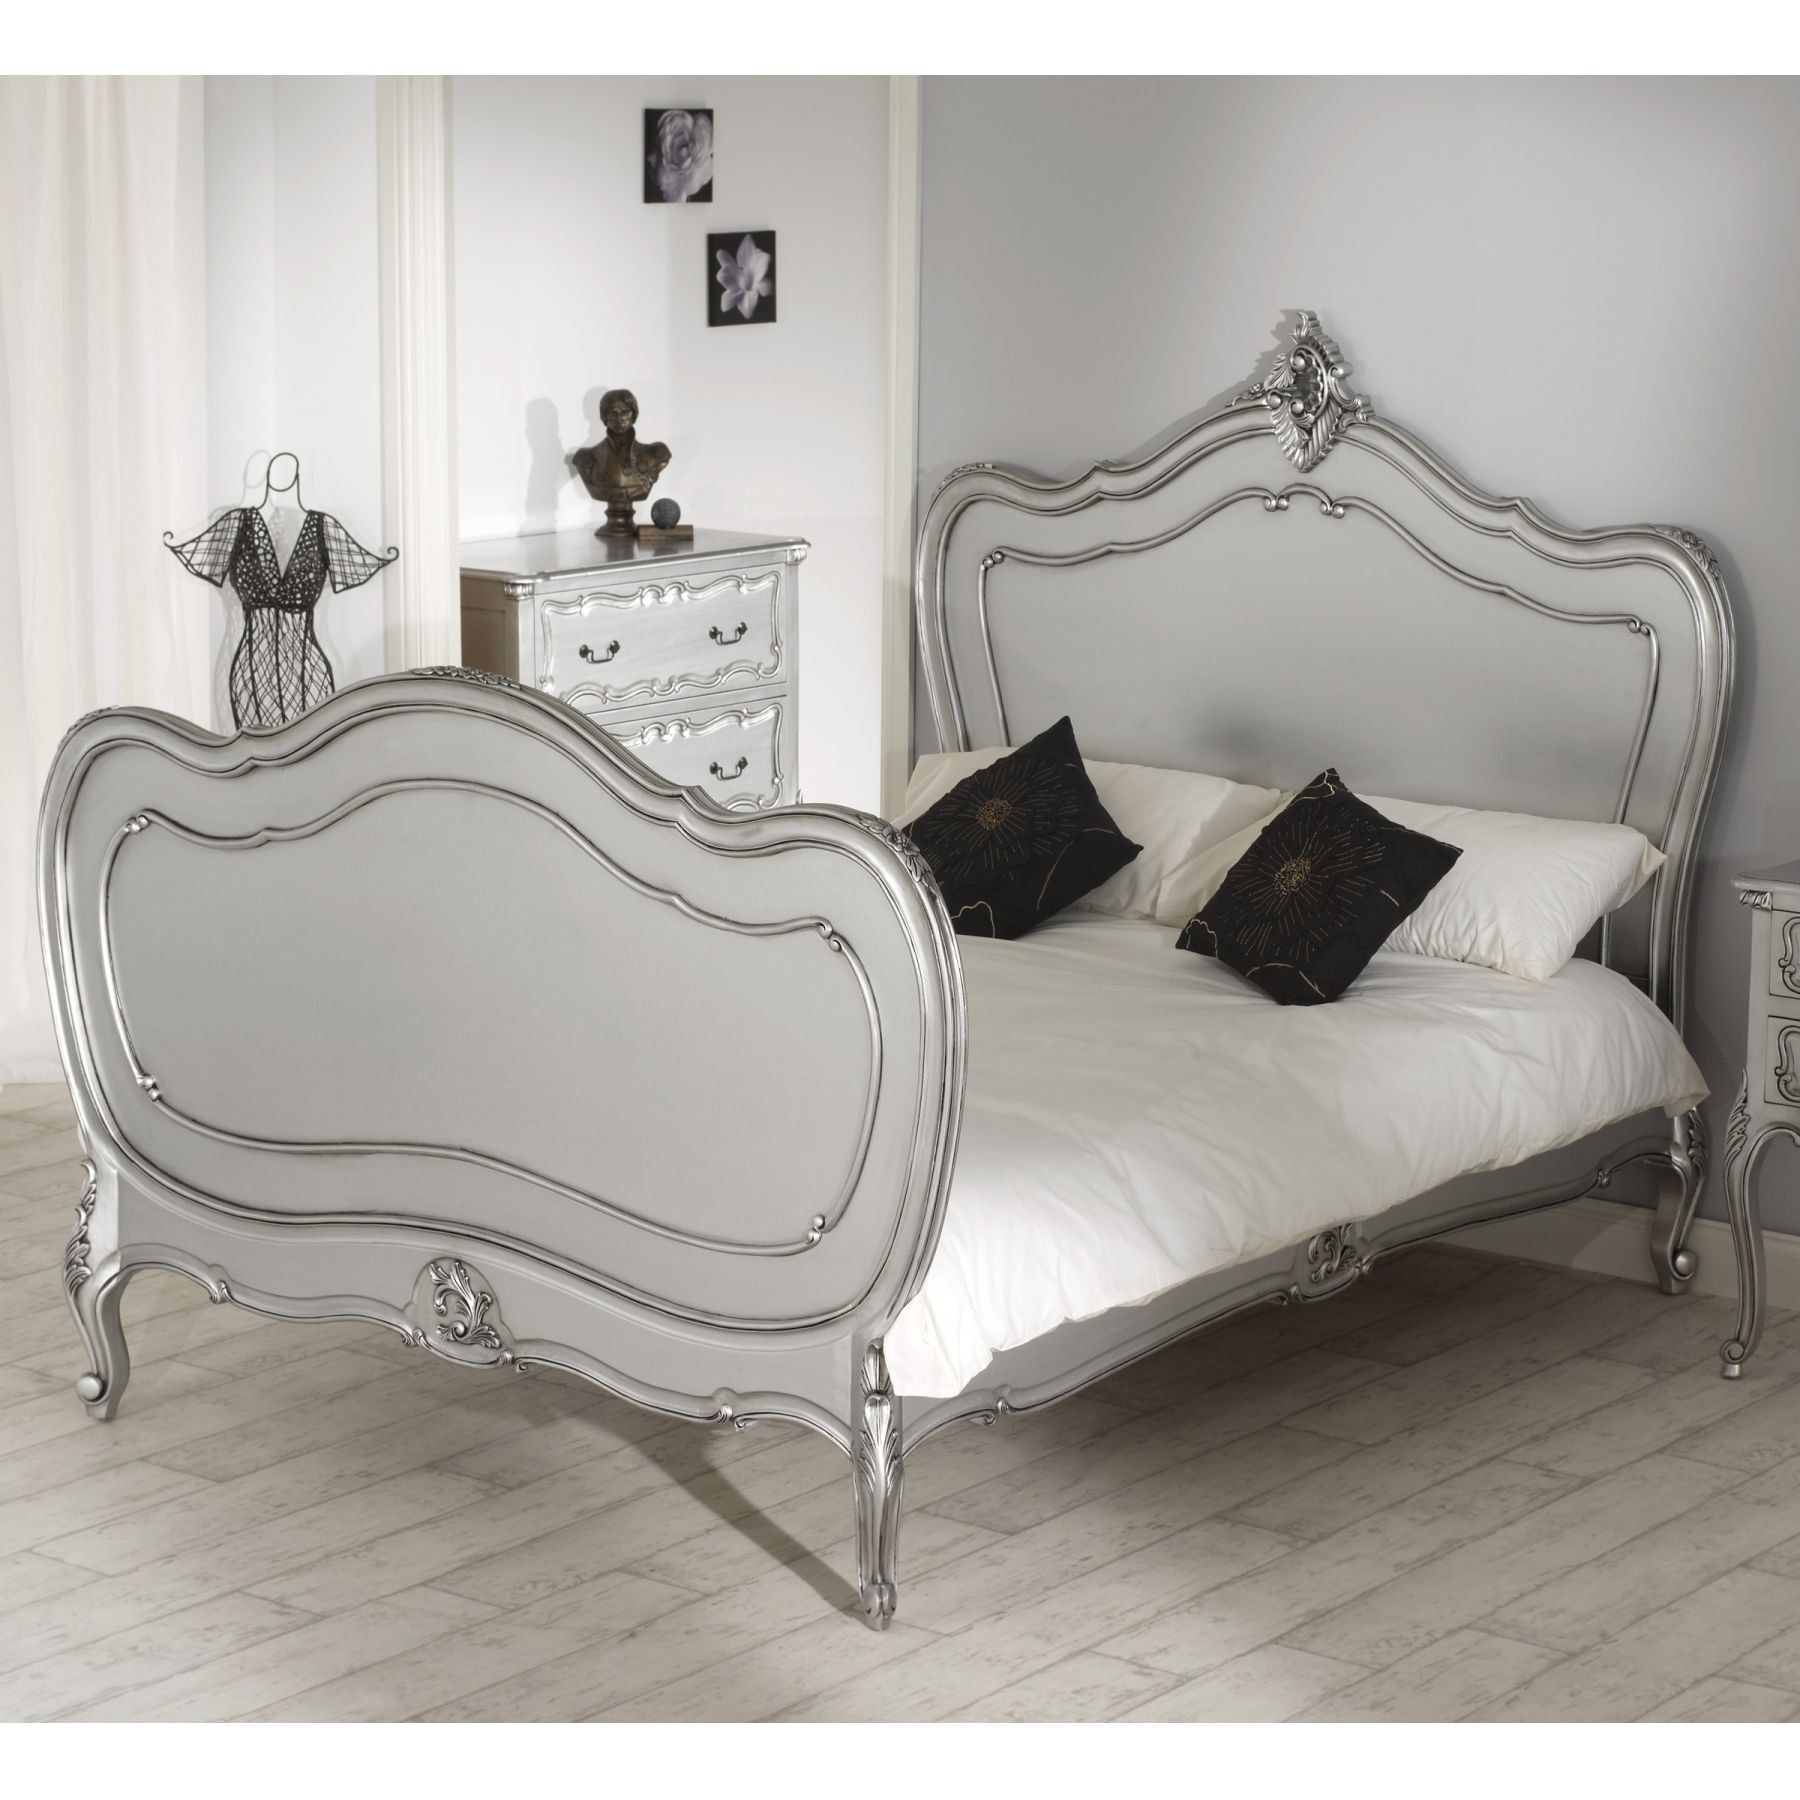 Lille Bedroom Furniture Rochelle Lille Antique French Silver Bed Size Double La